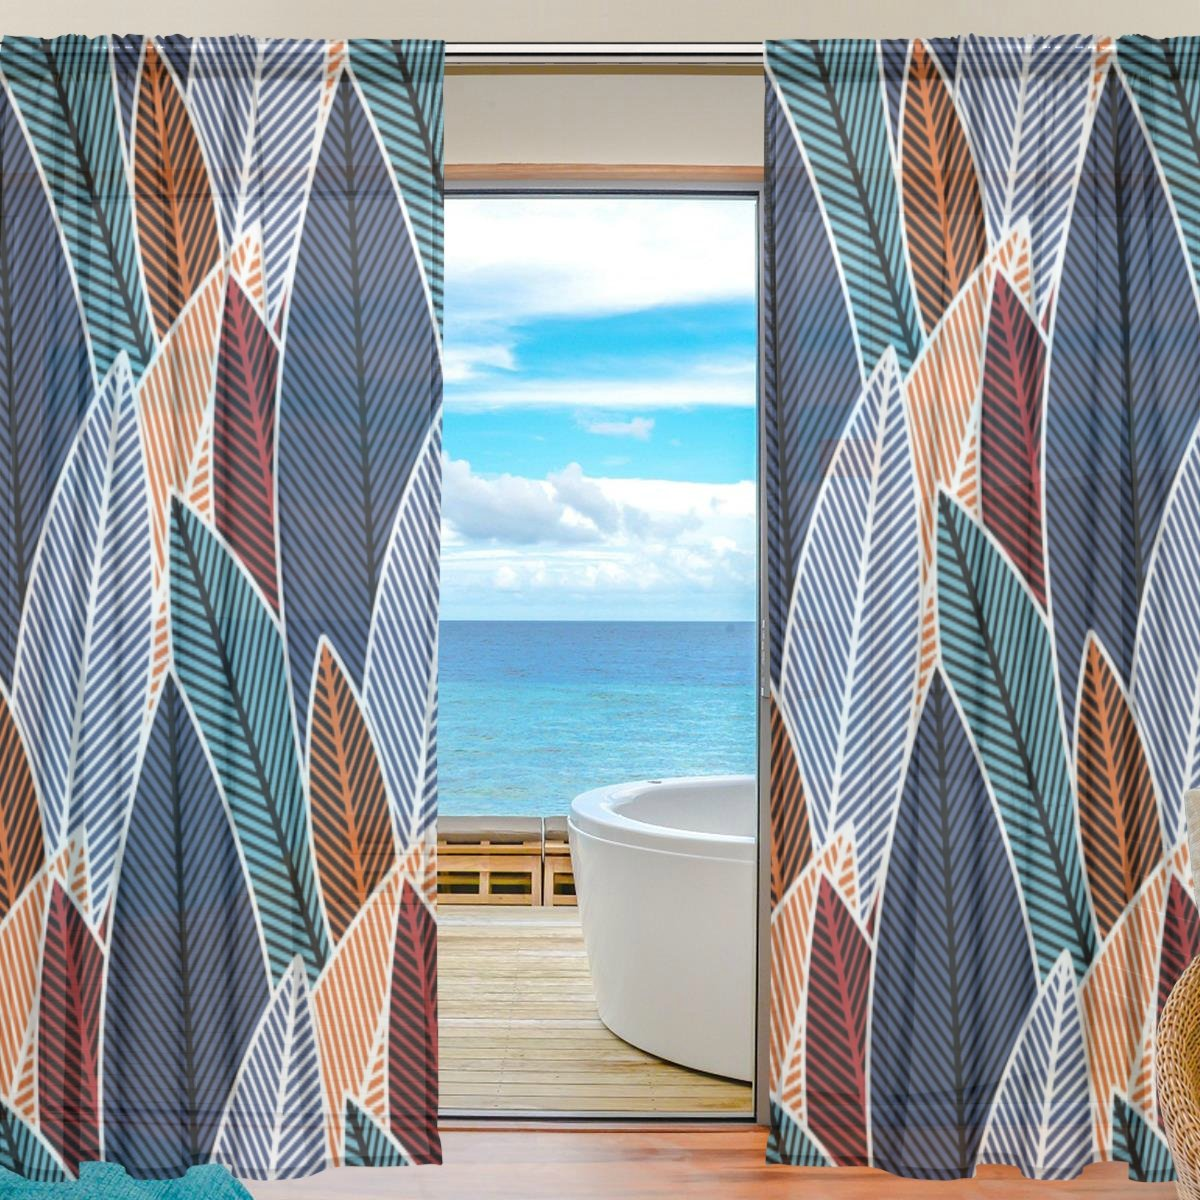 Chen Miranda Colorful Forest Plants Printed Tulle Polyester Window Sheer Curtain Panels Bedroom Living Room Office Draperies Door Window Gauze Shade Curtains 55x78 inch Two Panels Set